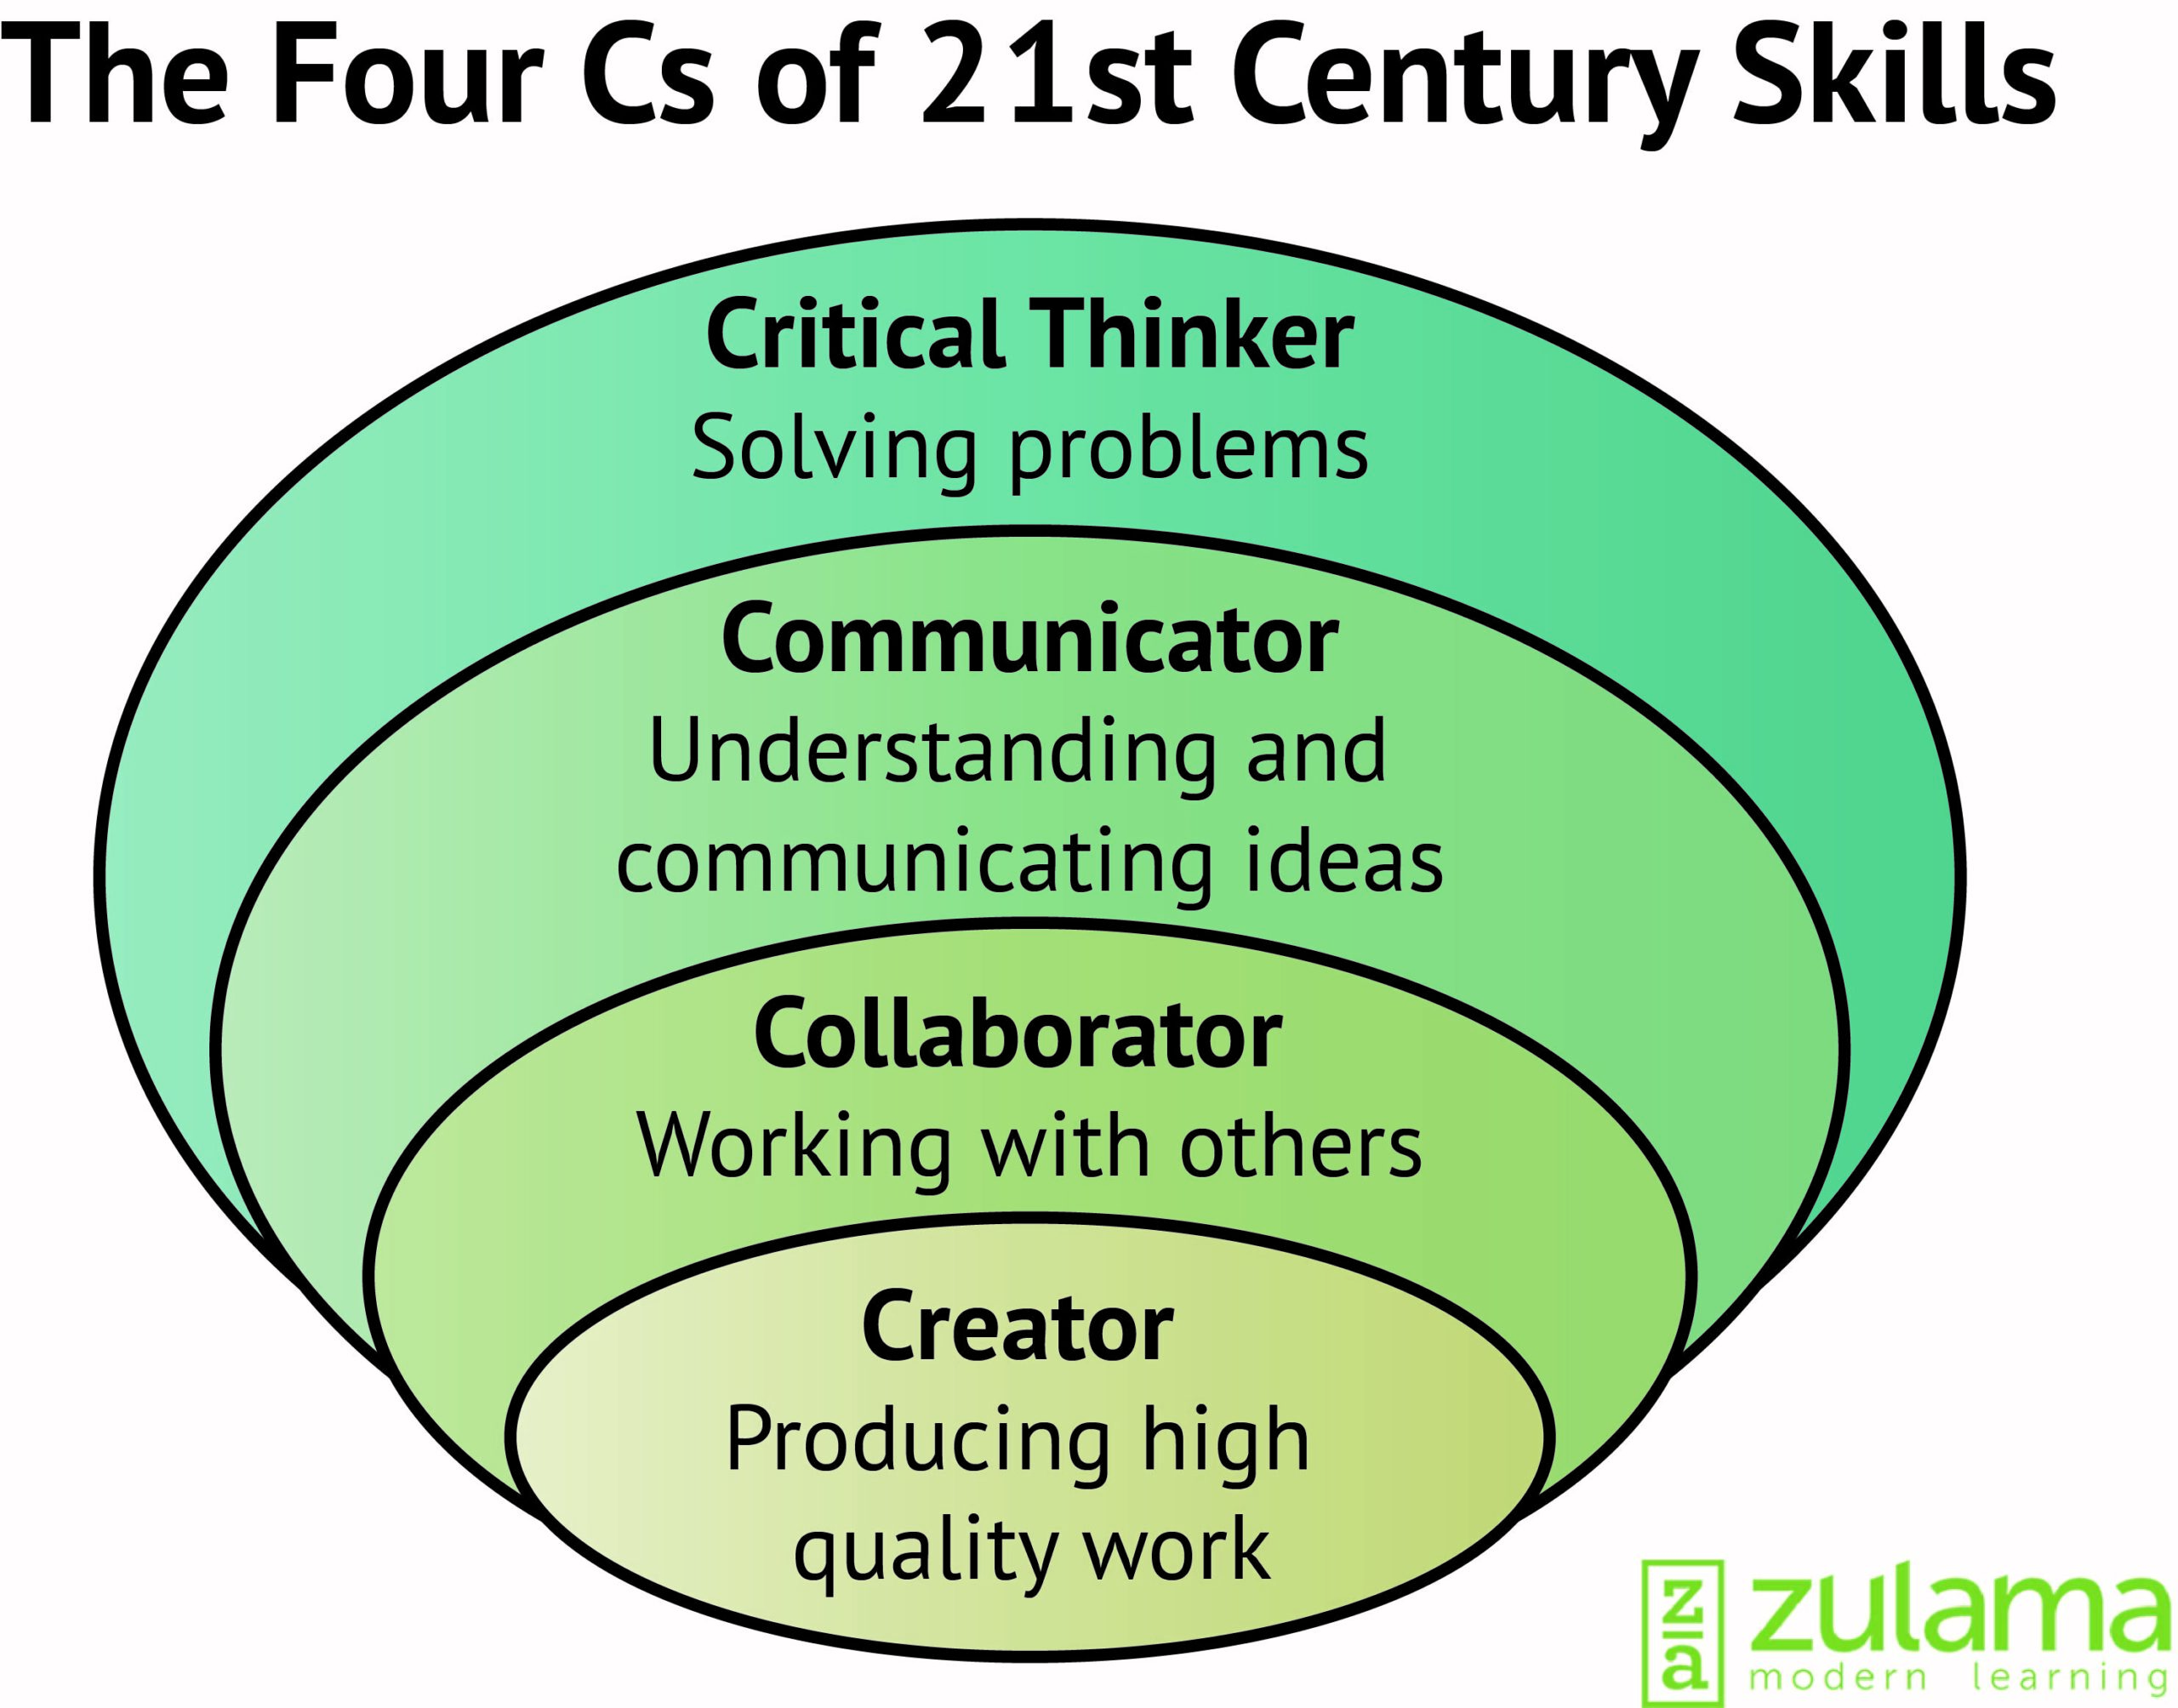 21st century skills 21st century skills recent technological and scientific breakthroughs, discoveries and inventions are changing the way we learn, work, interact, and communicate in an increasingly complex, changing, competitive, and interconnected world we all want to ensure that our children gain the life skills needed to be successful.